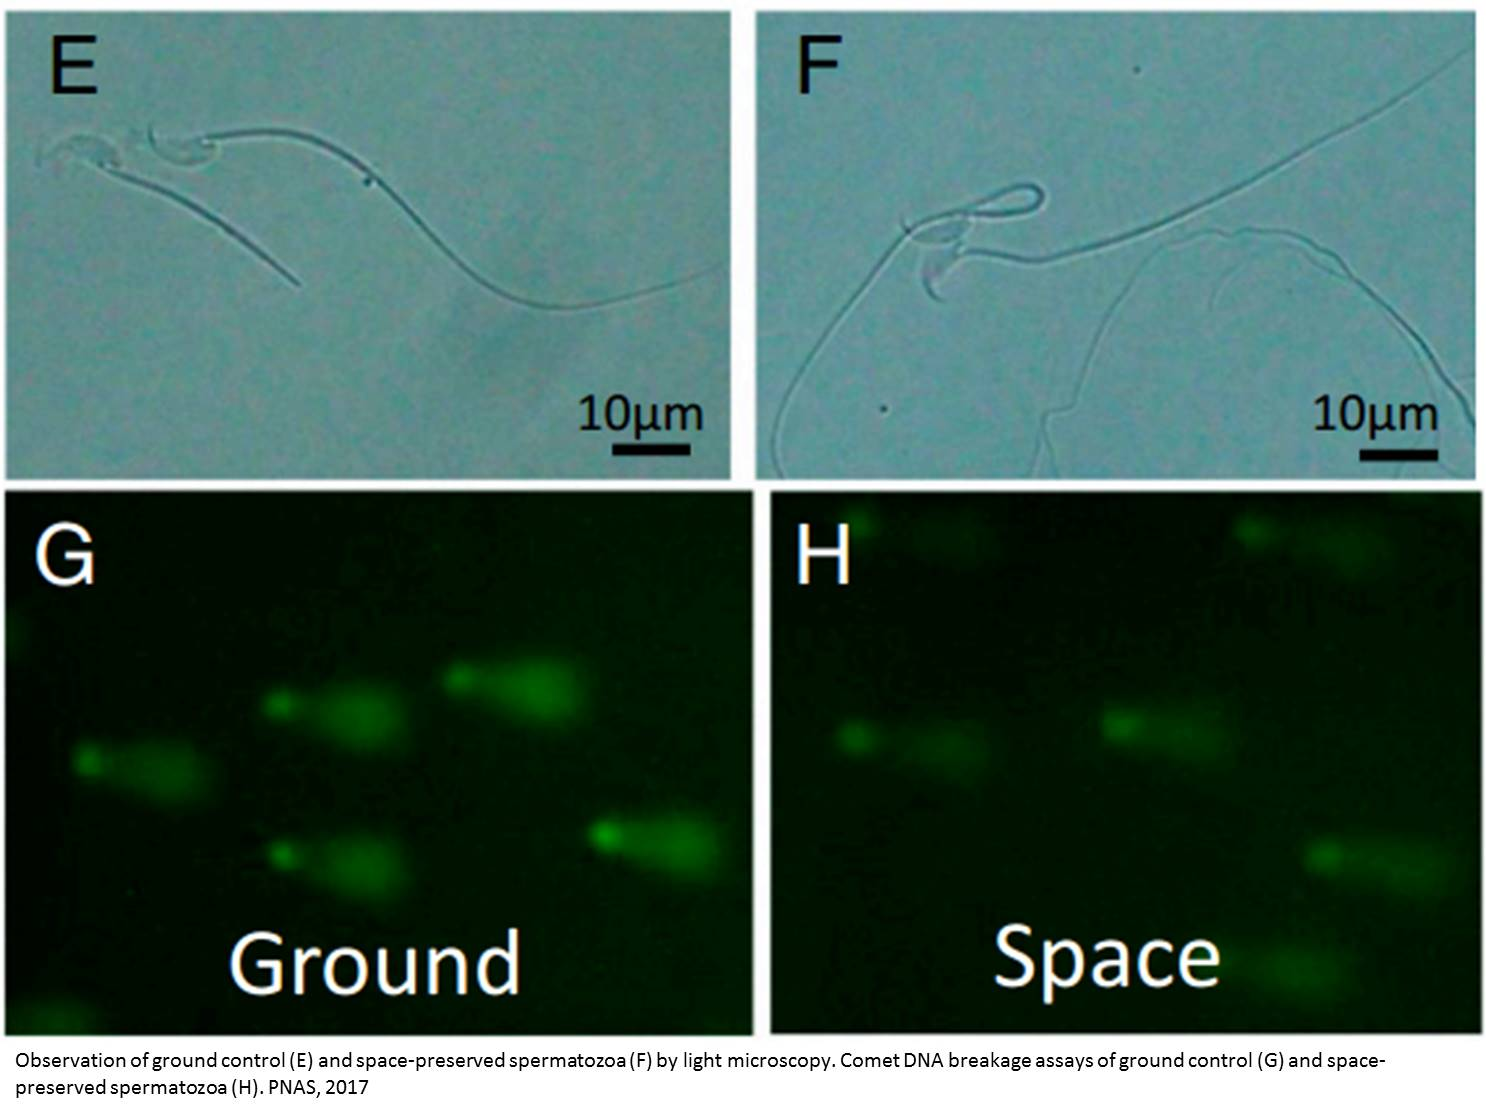 Sperm damage at the international space station